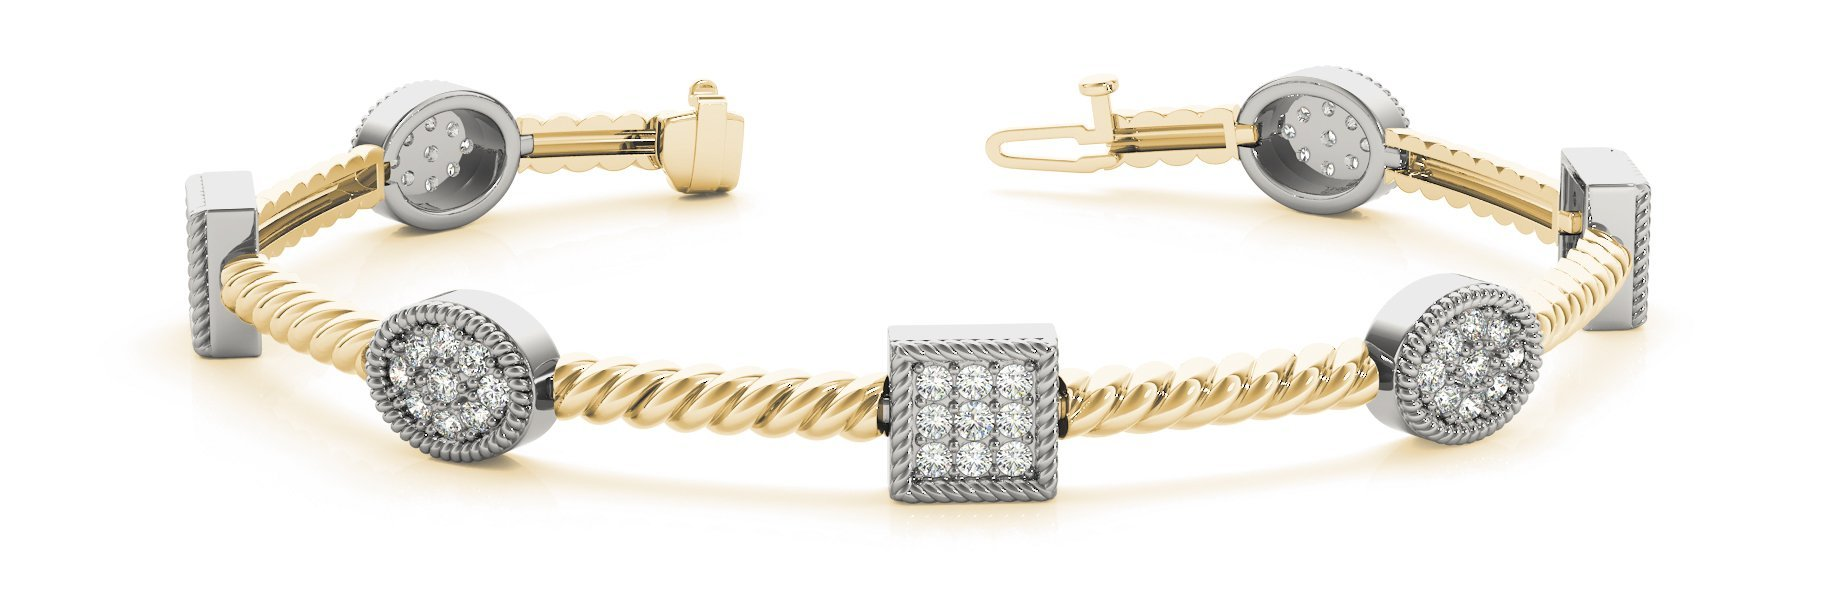 Fancy Diamond Bracelet Ladies 1.67ct tw - 14kt Yellow Gold